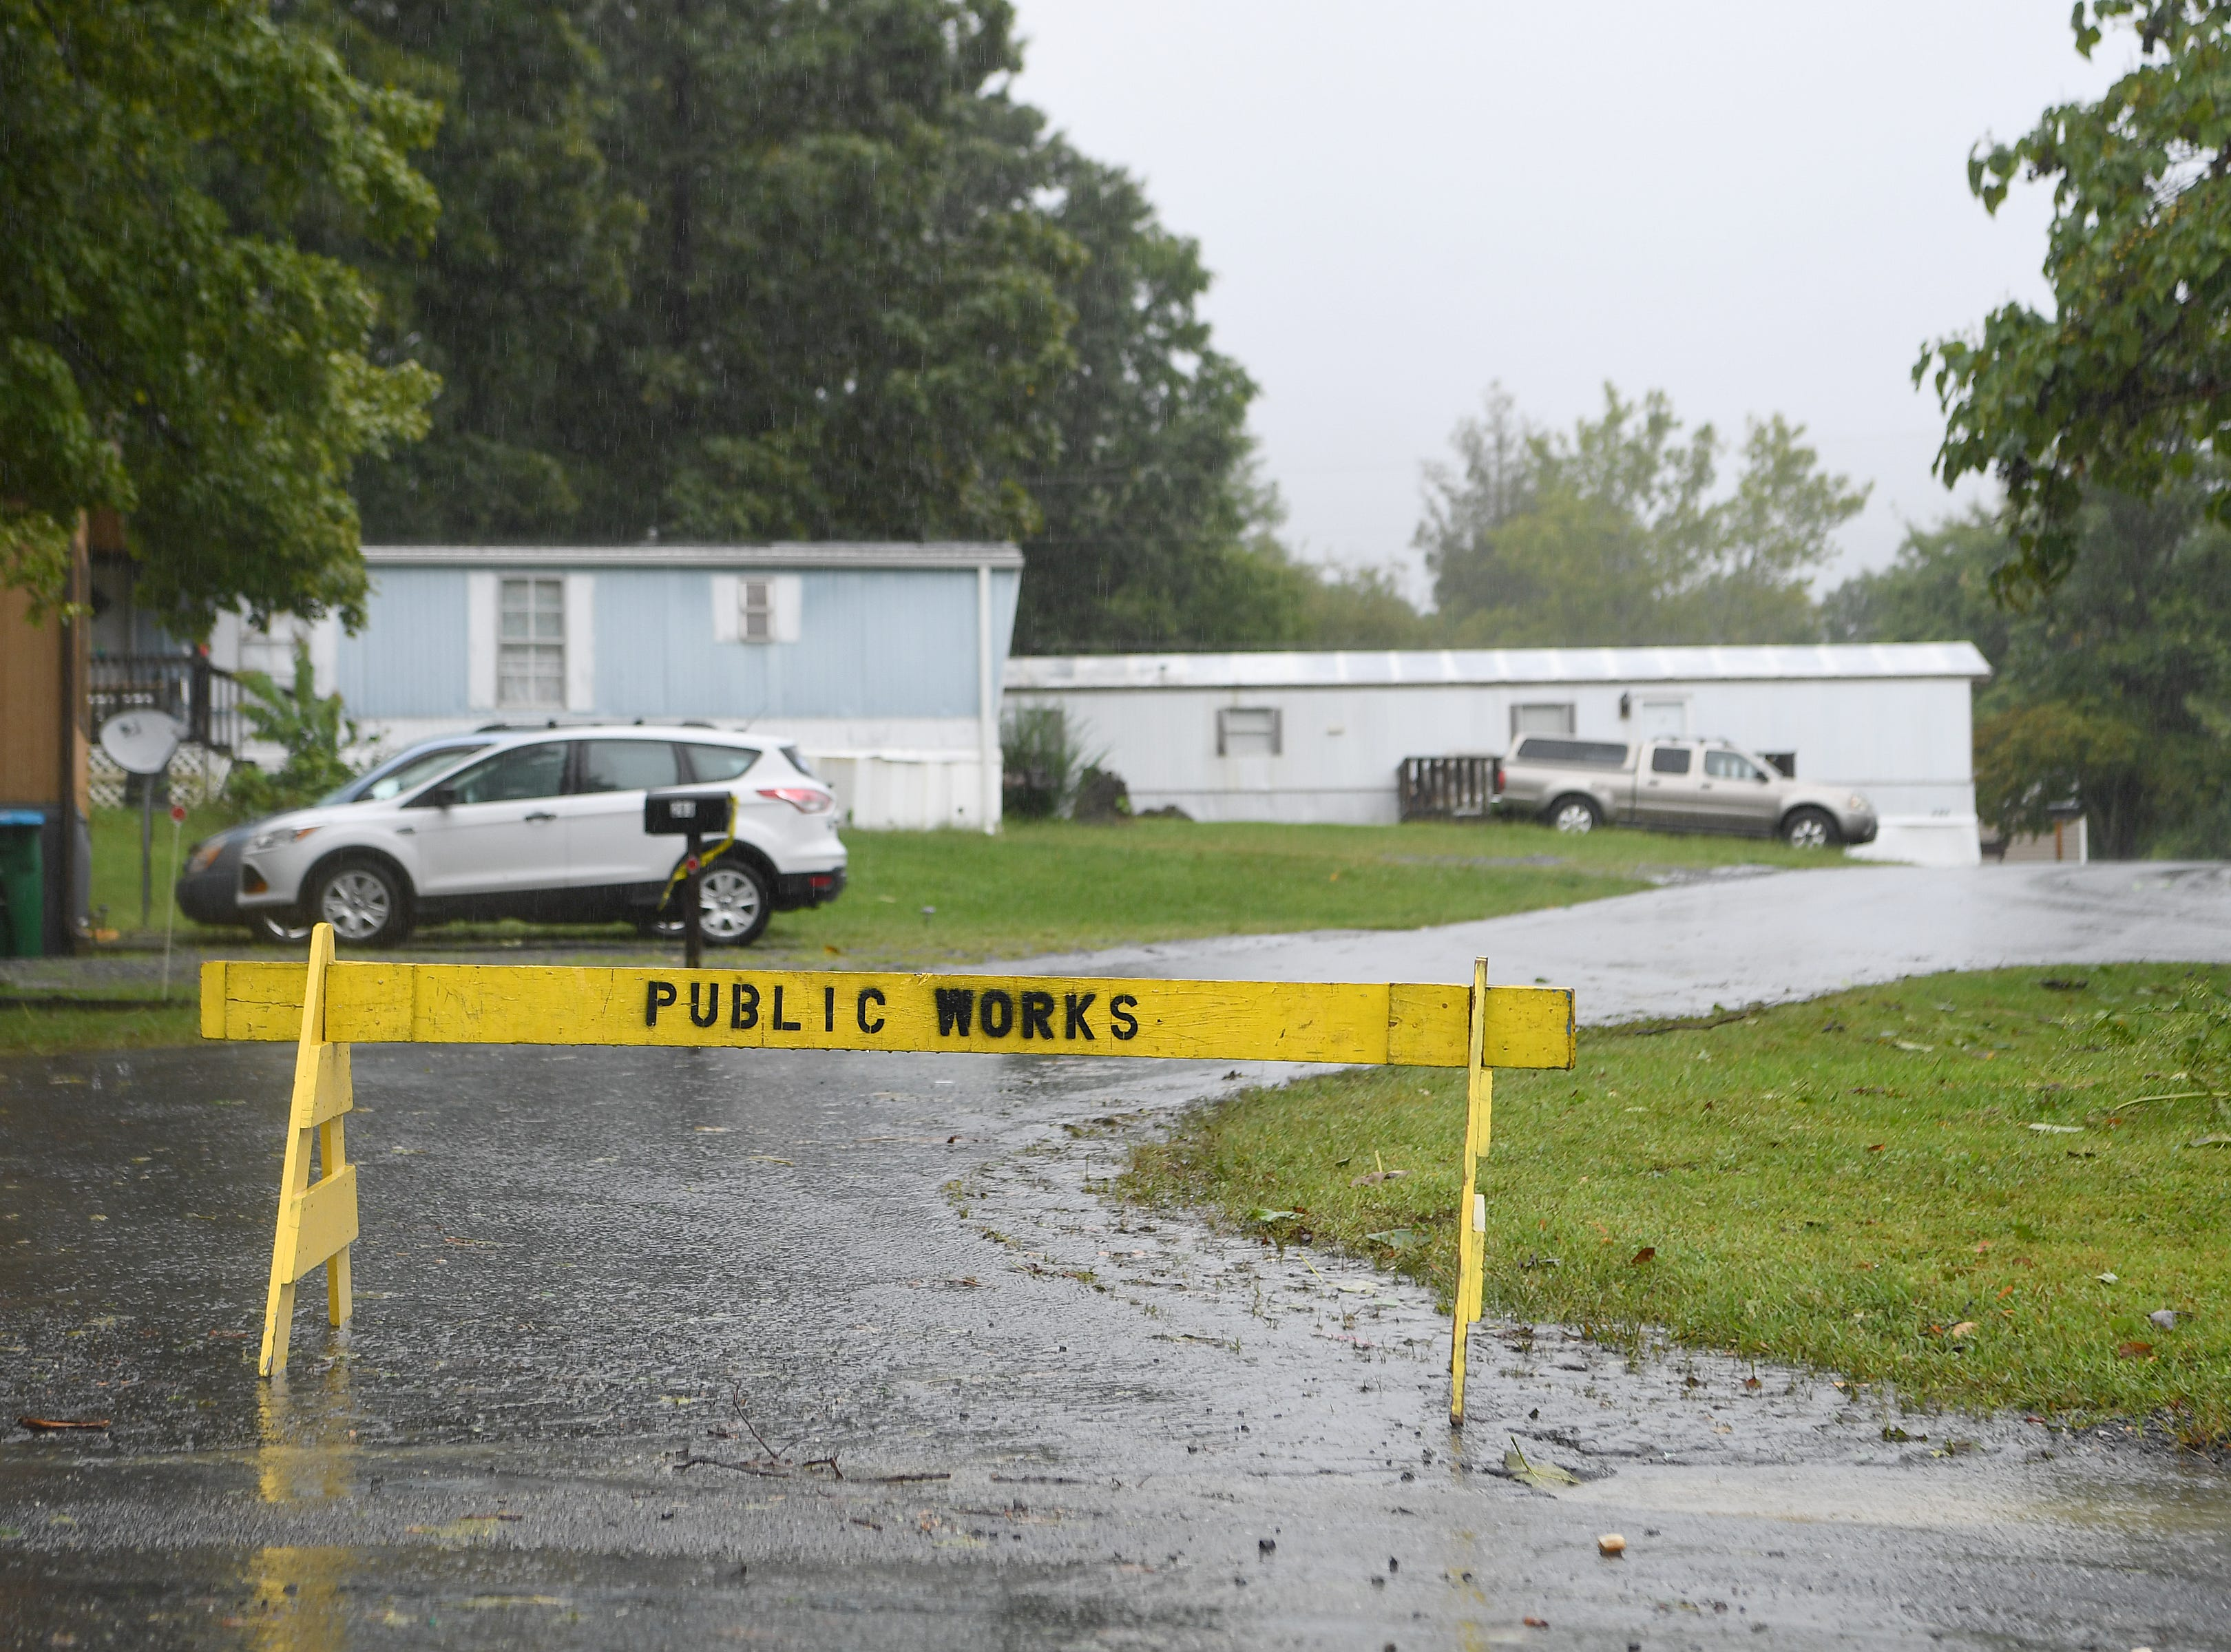 Some residents of the Portman Villas Mobile Home Park in Black Mountain were evacuated as Flat Creek began to flood into the park on Sept. 16, 2018.